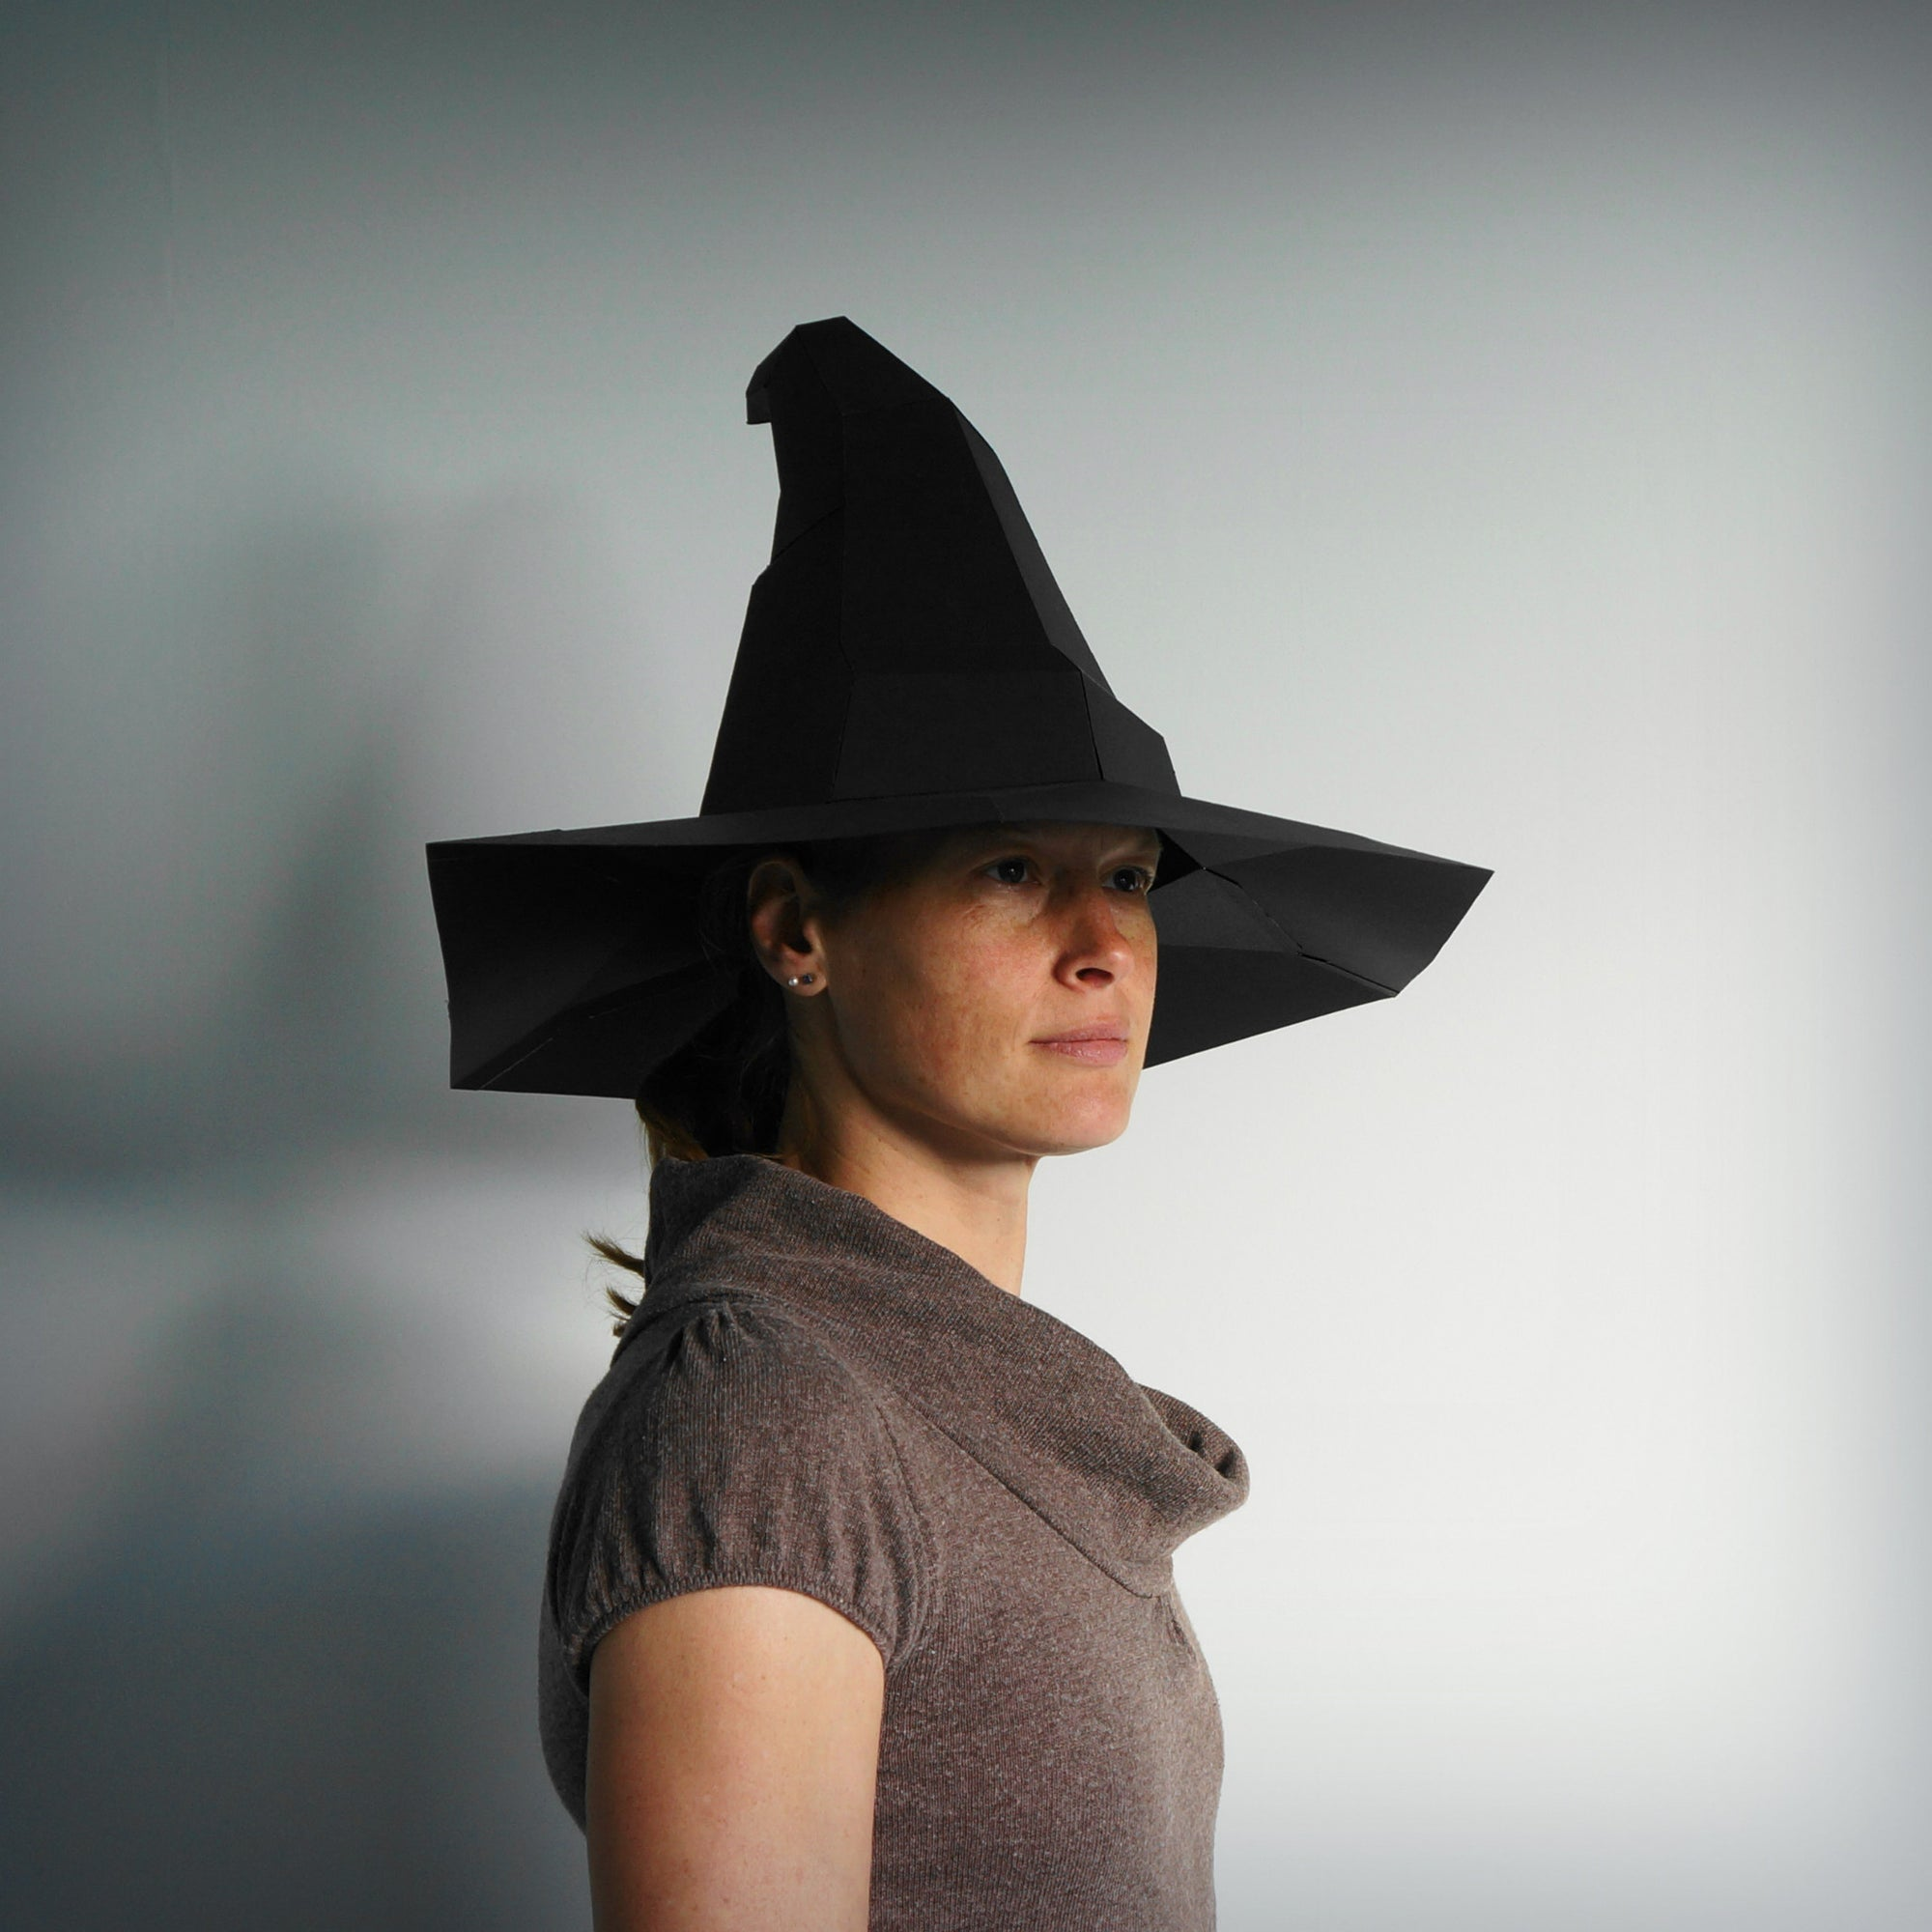 Magic Hat - For witches, wizards and those of a magical disposition - Wintercroft  - 1